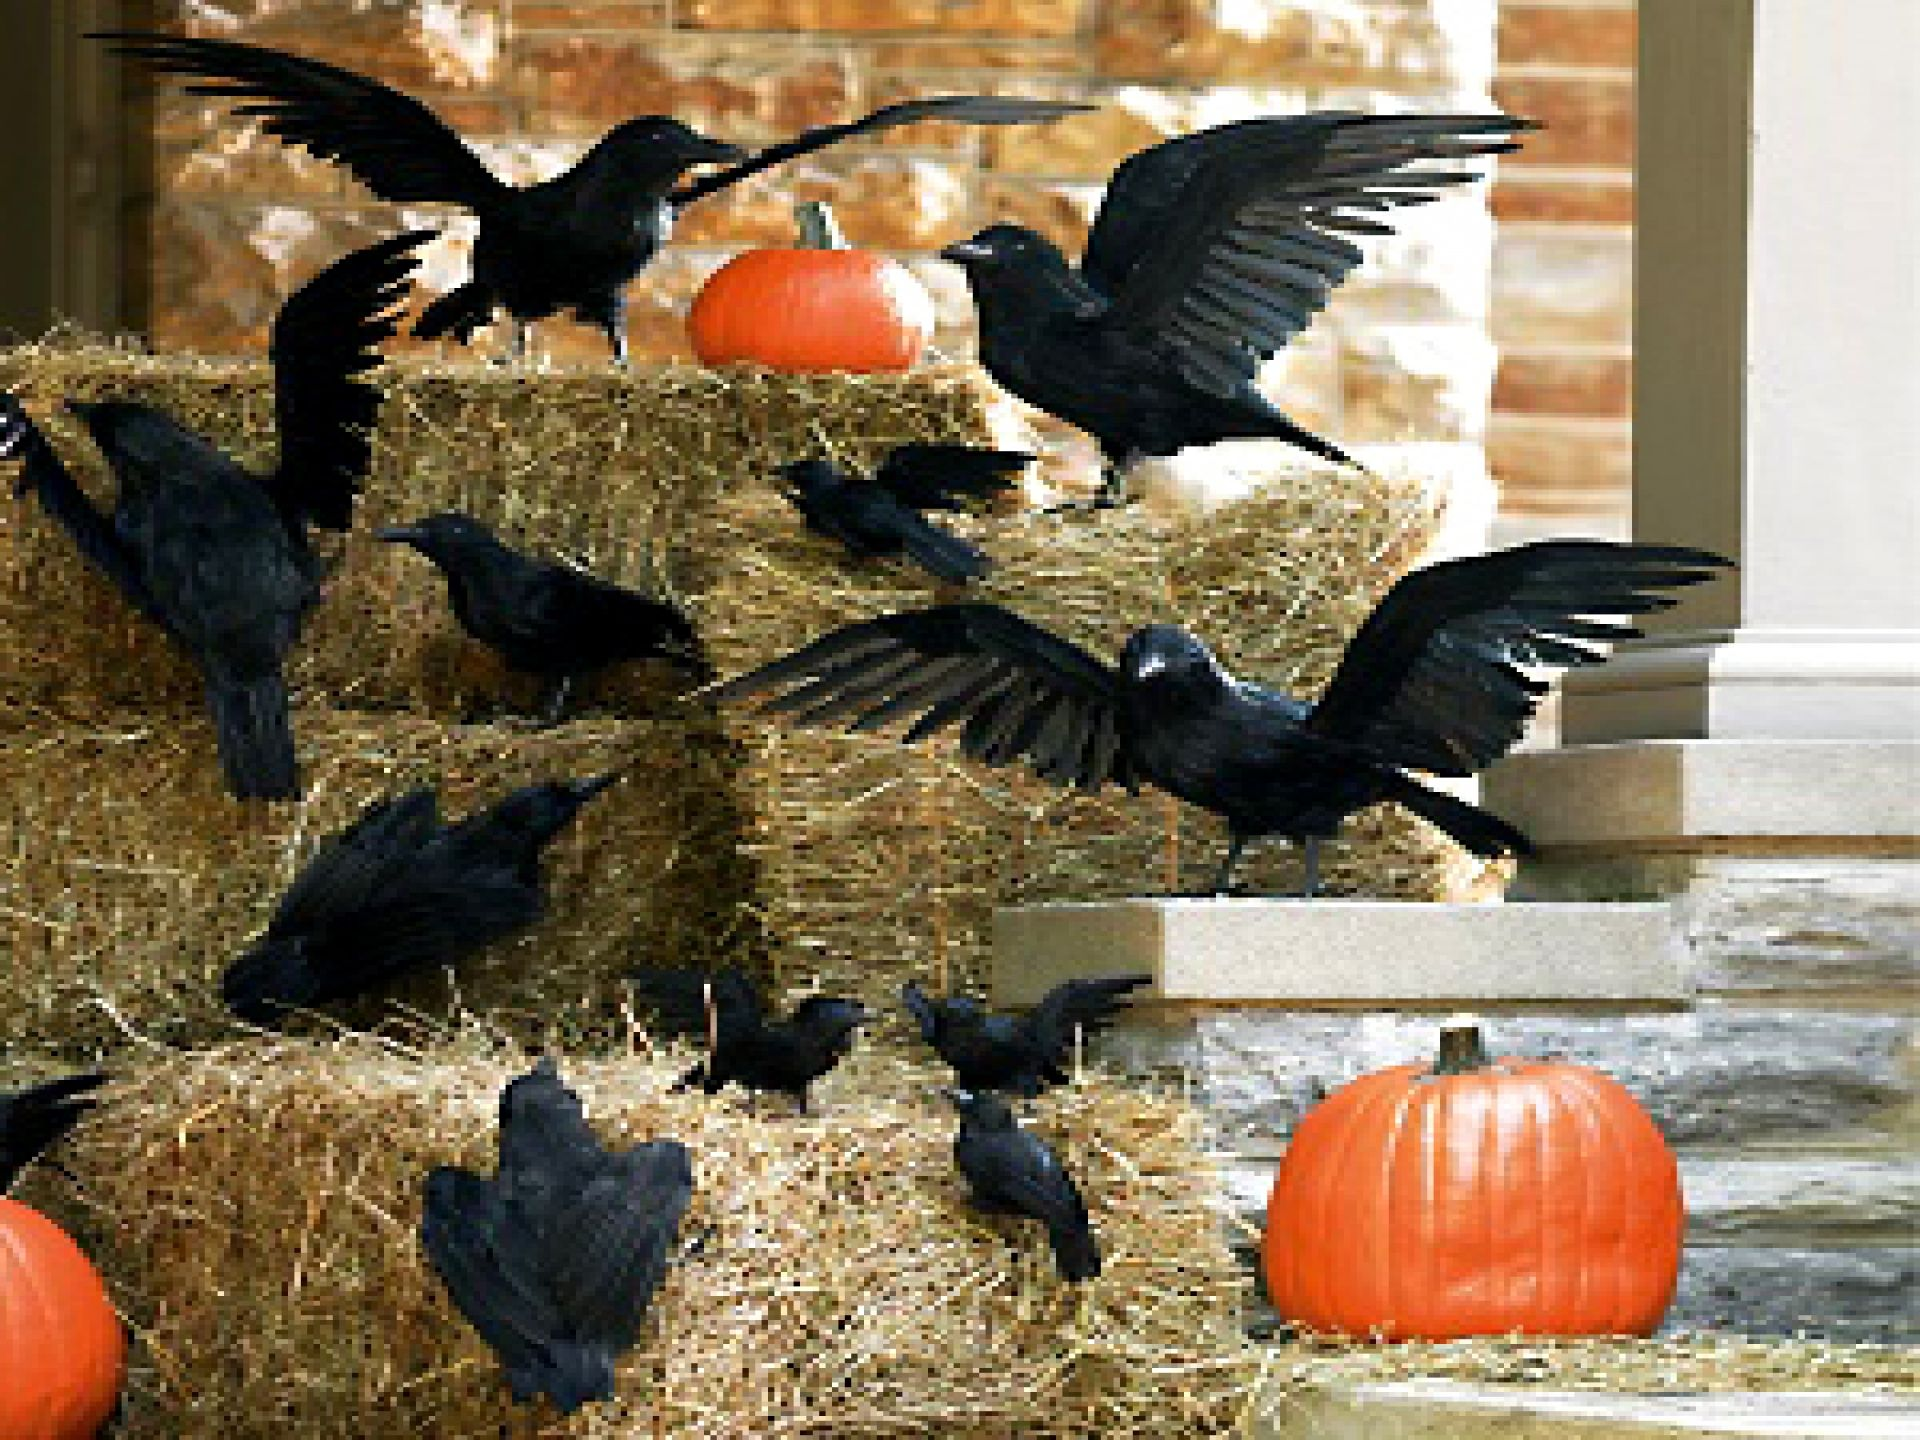 Homemade Outdoor Halloween Decorations Ideas This is a cool bird - Pinterest Halloween Decorations